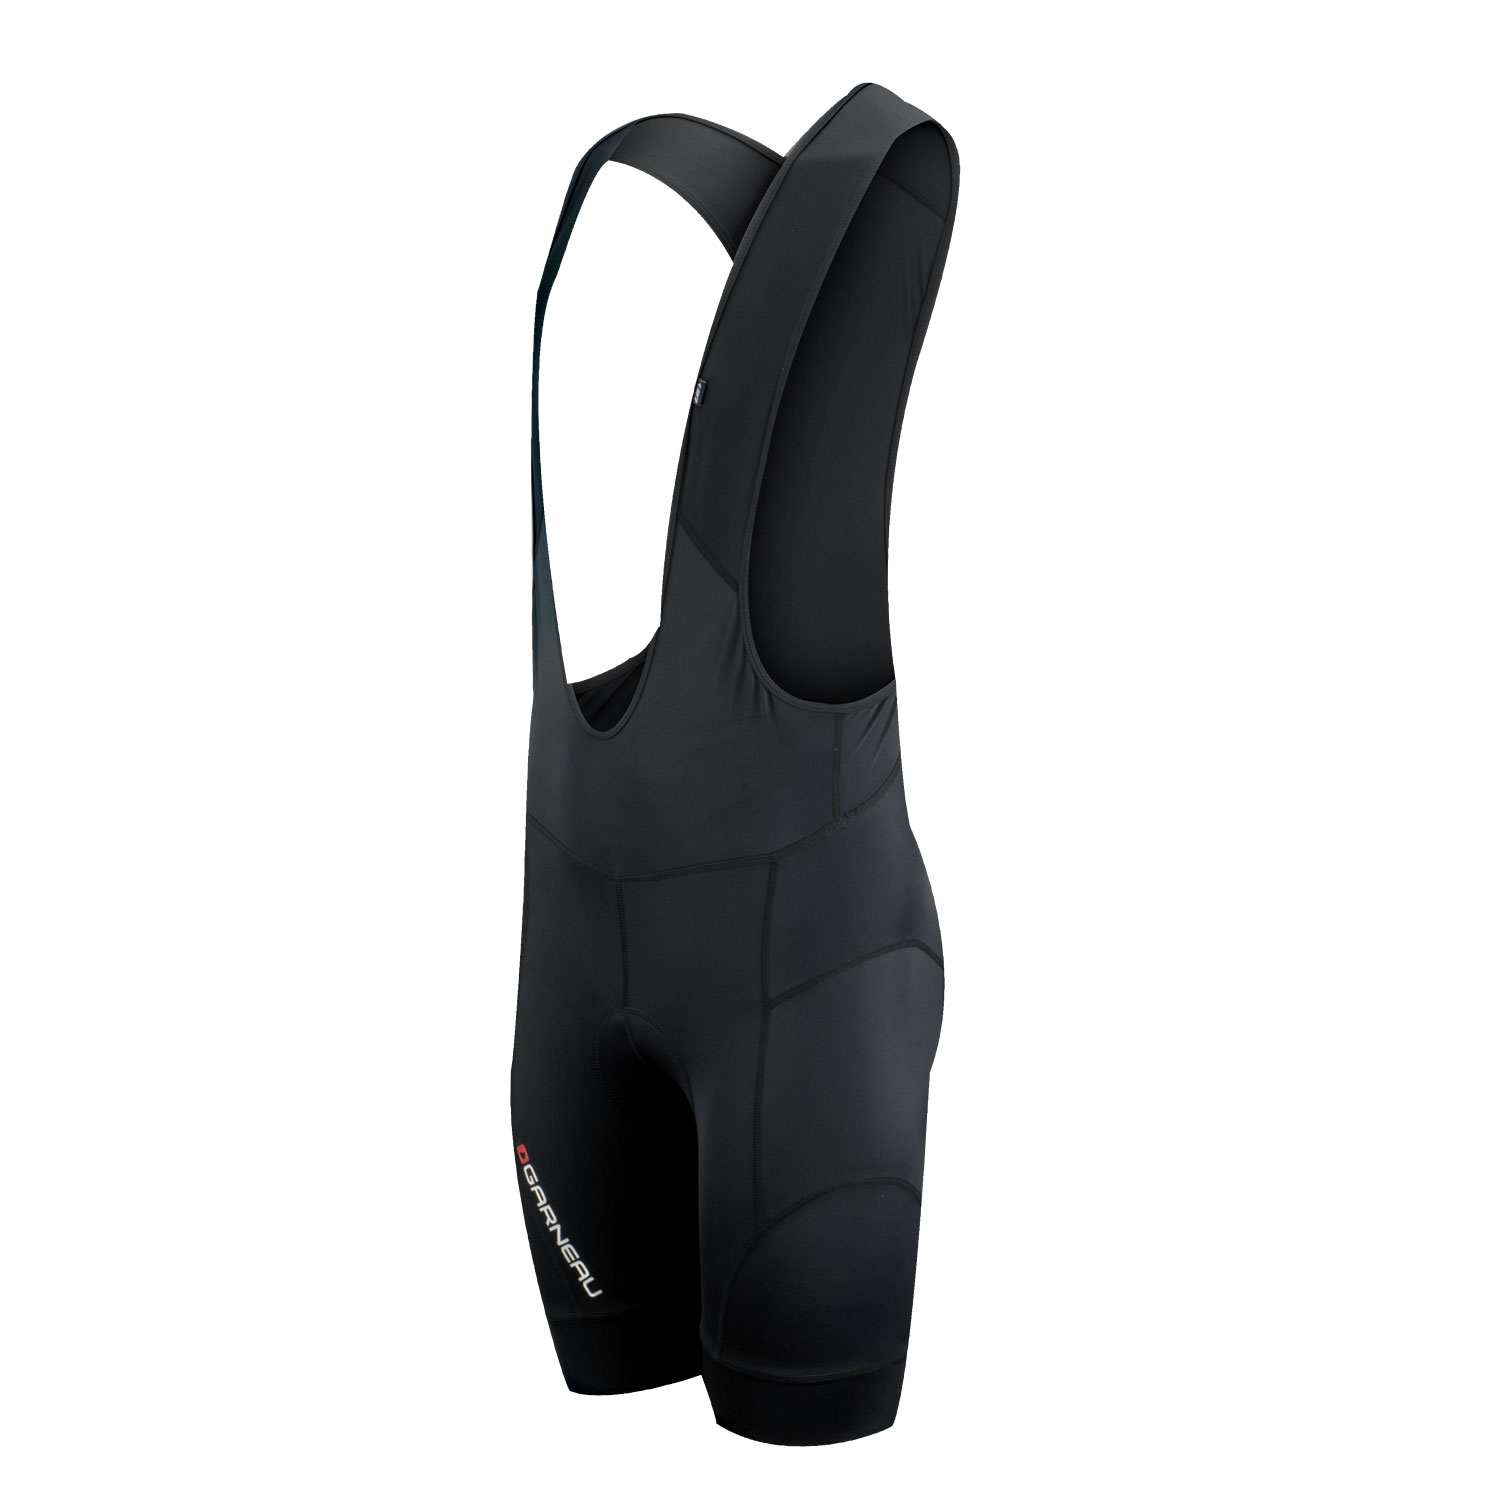 bike shorts louis garneau pro feel 2 bib shorts - nashbar exclusive IZZFRVR